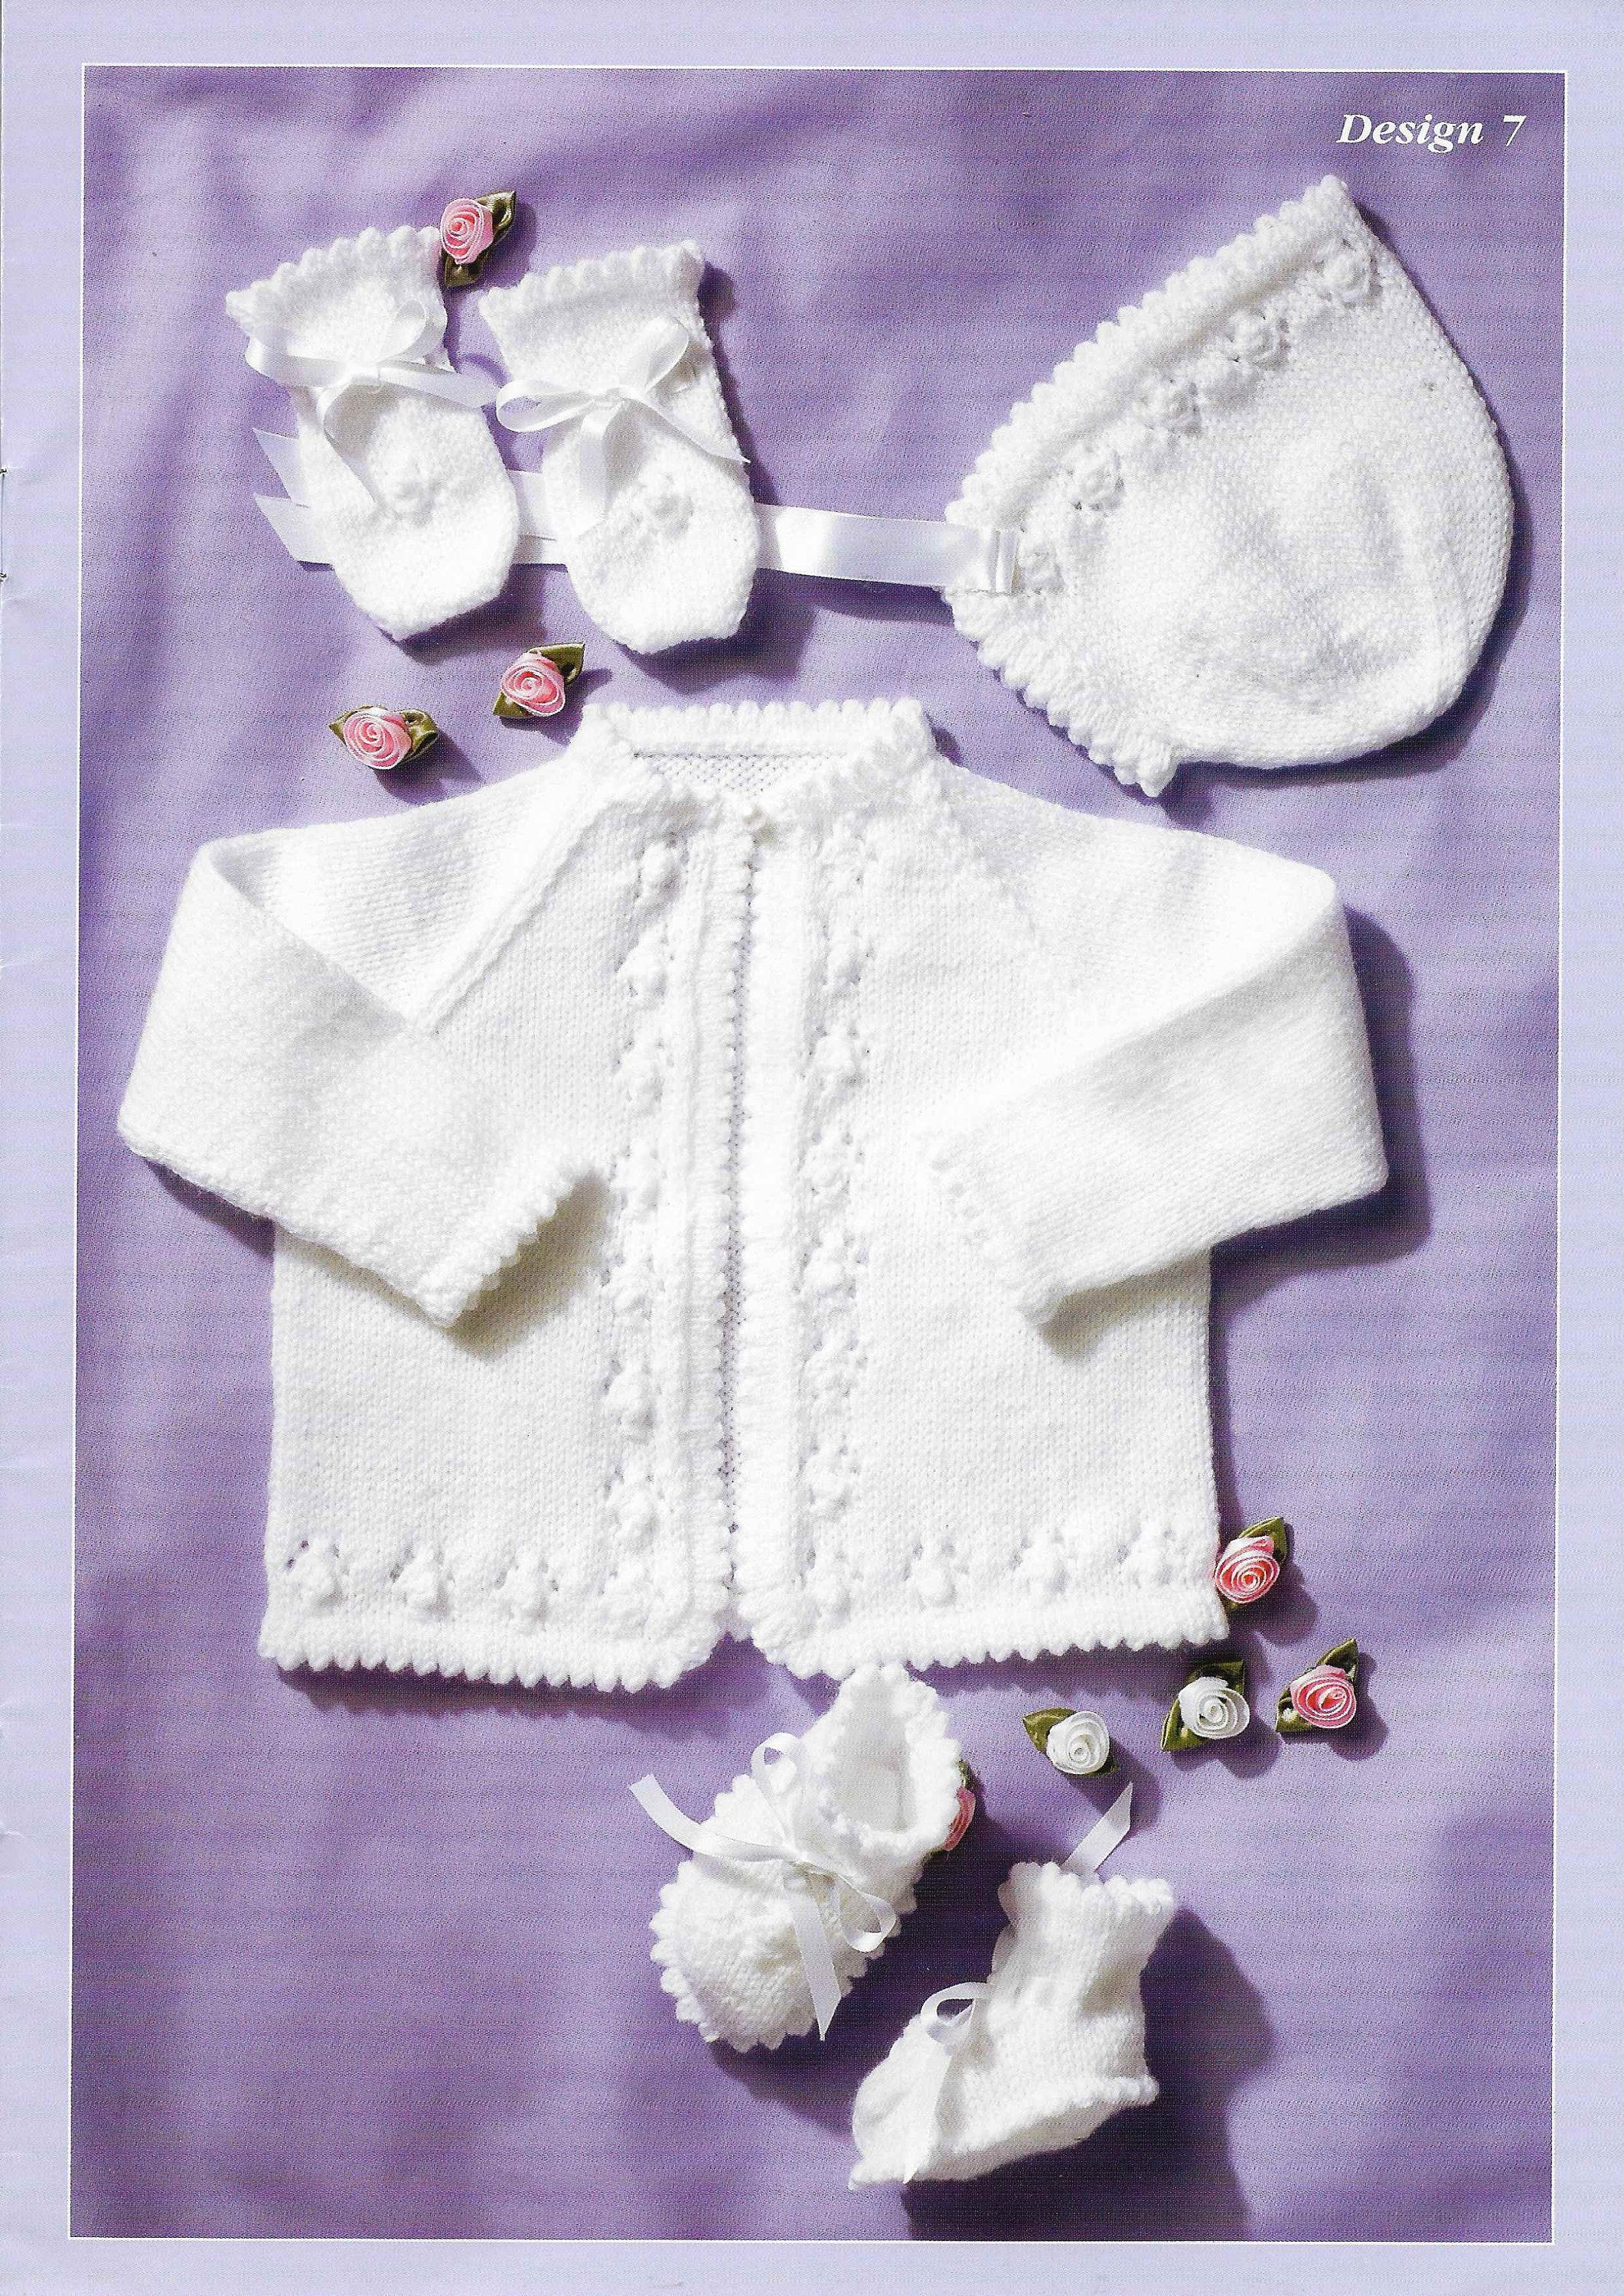 4 Ply Baby Matinee Set Knitting Pattern PDF Newborn Matinee Coat Cardigan  Baby Doll Premature Hat 12 - 22 inch 4 PLY Instant download by  Thecutepatternshop ... 34df0e662c68